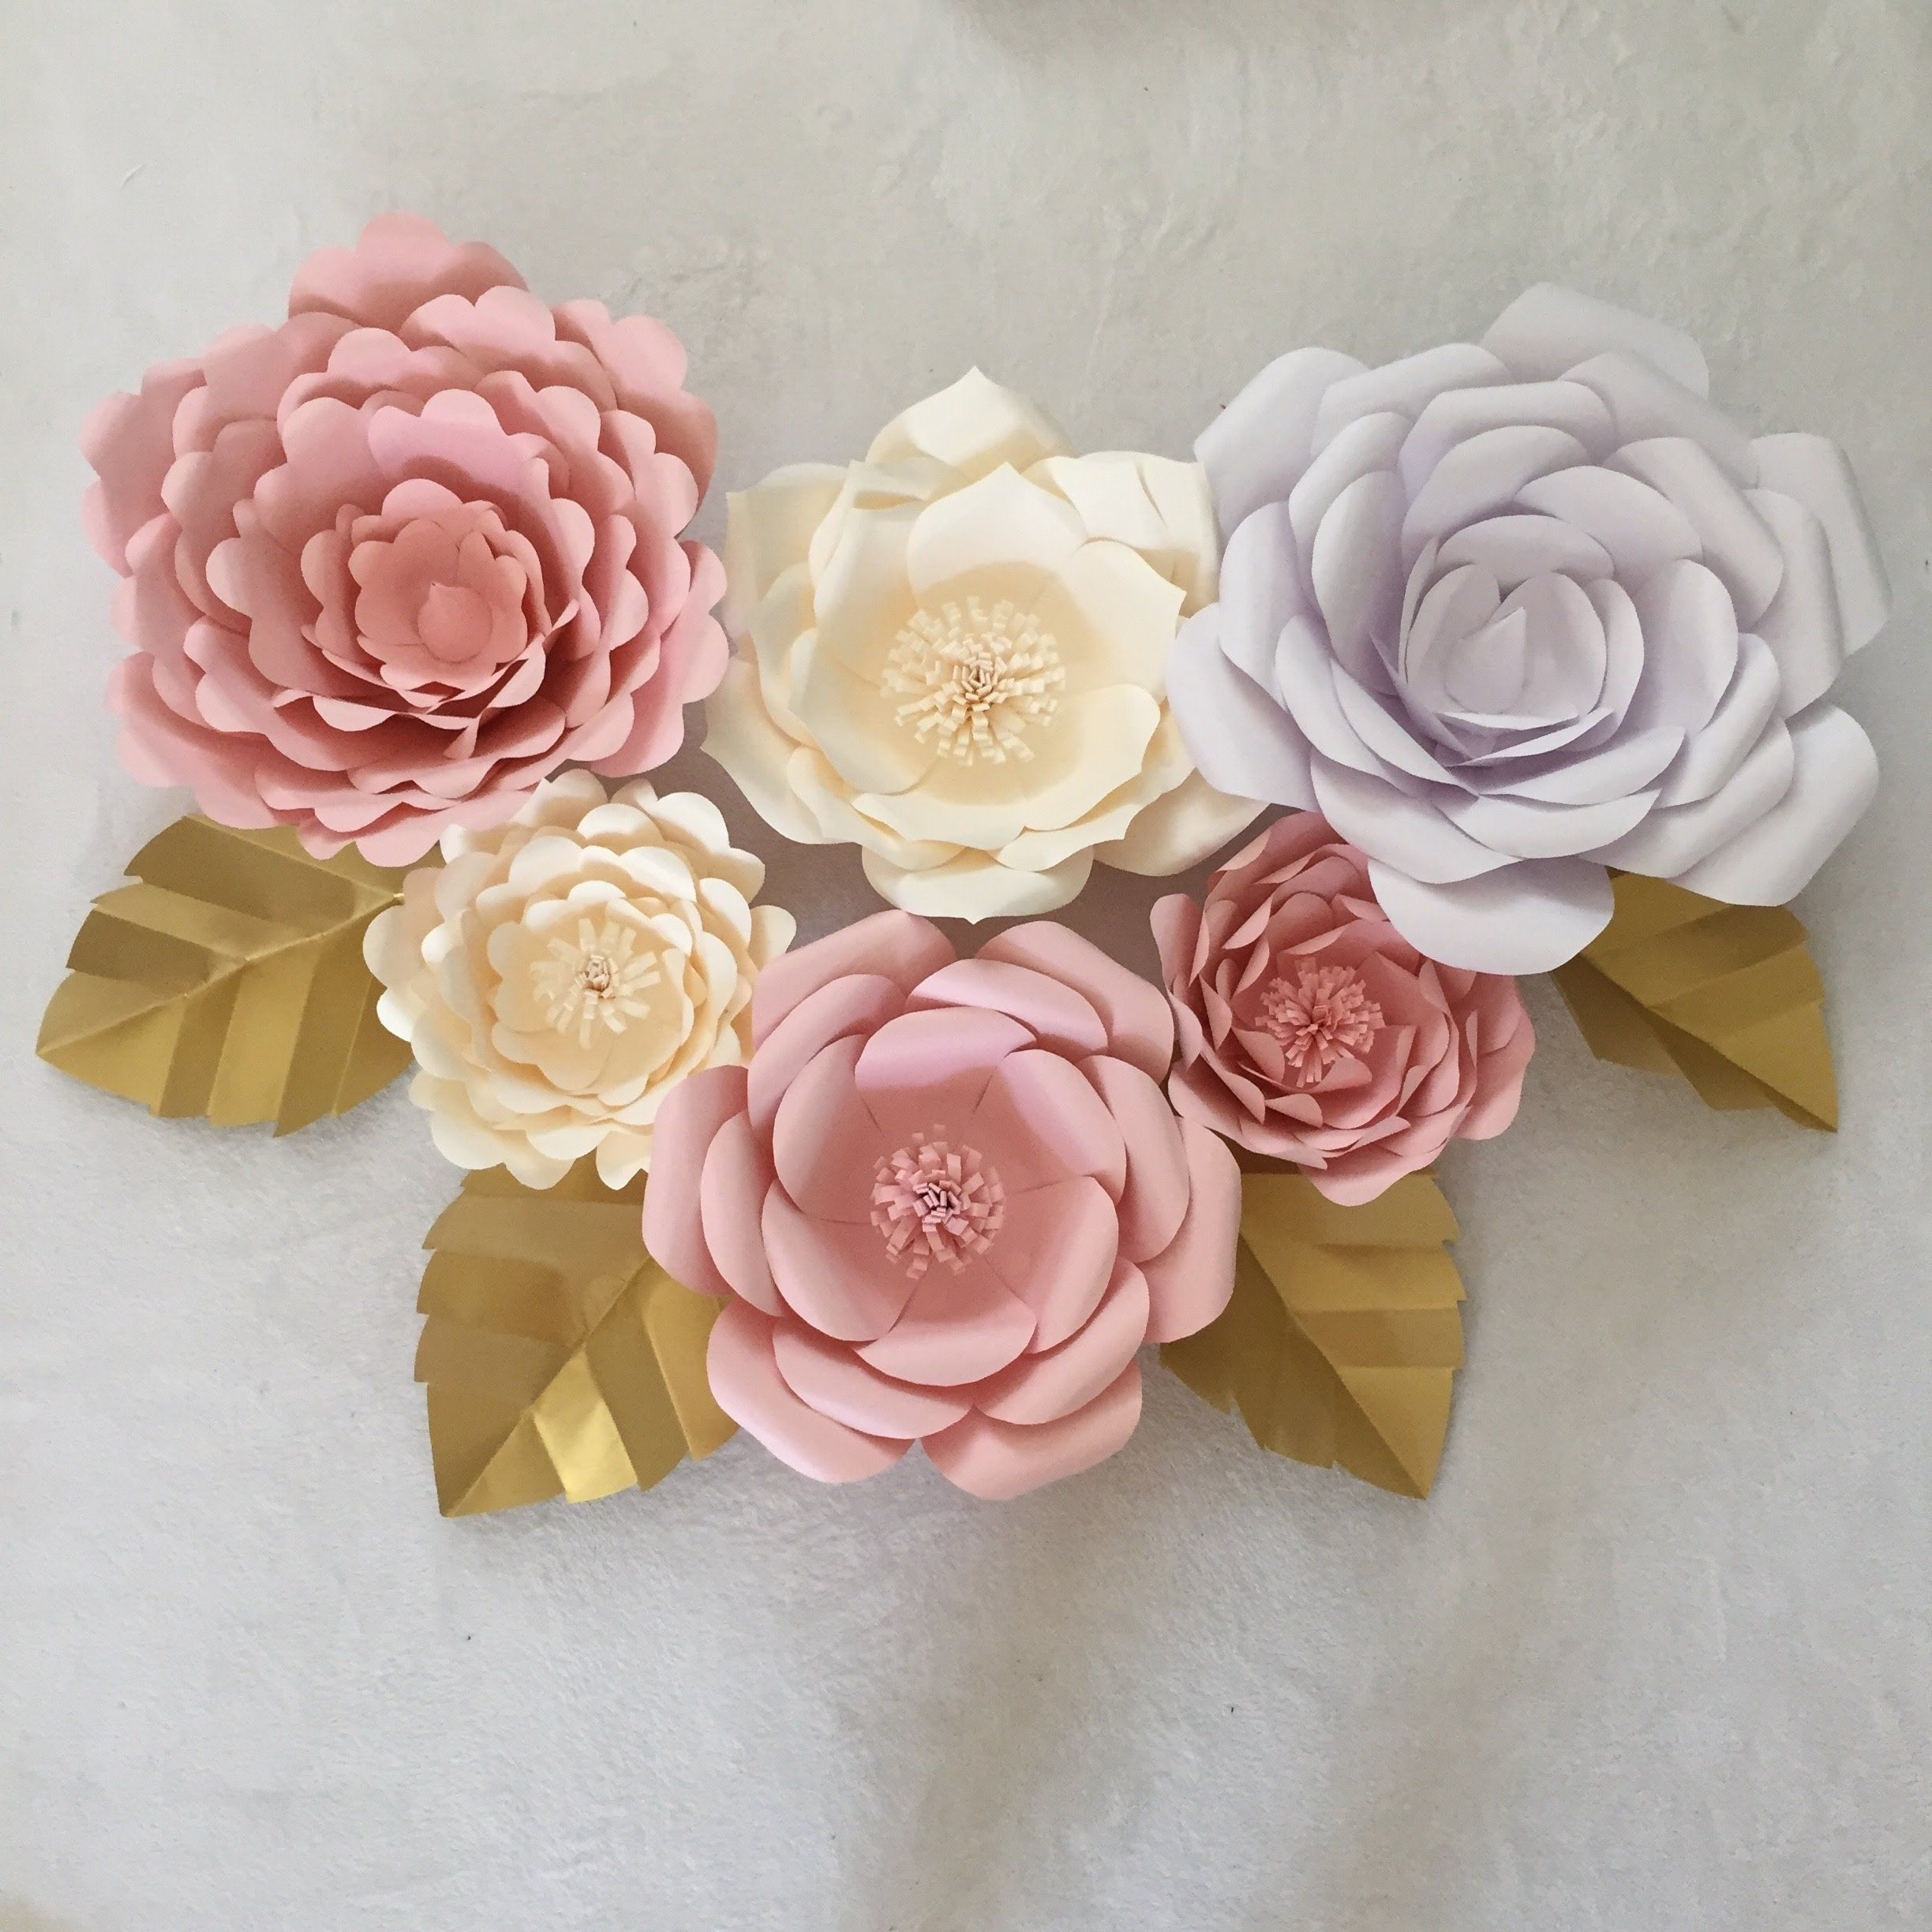 Pin By Nataly Maximova On Paper Crafting Ideas Paper Flowers